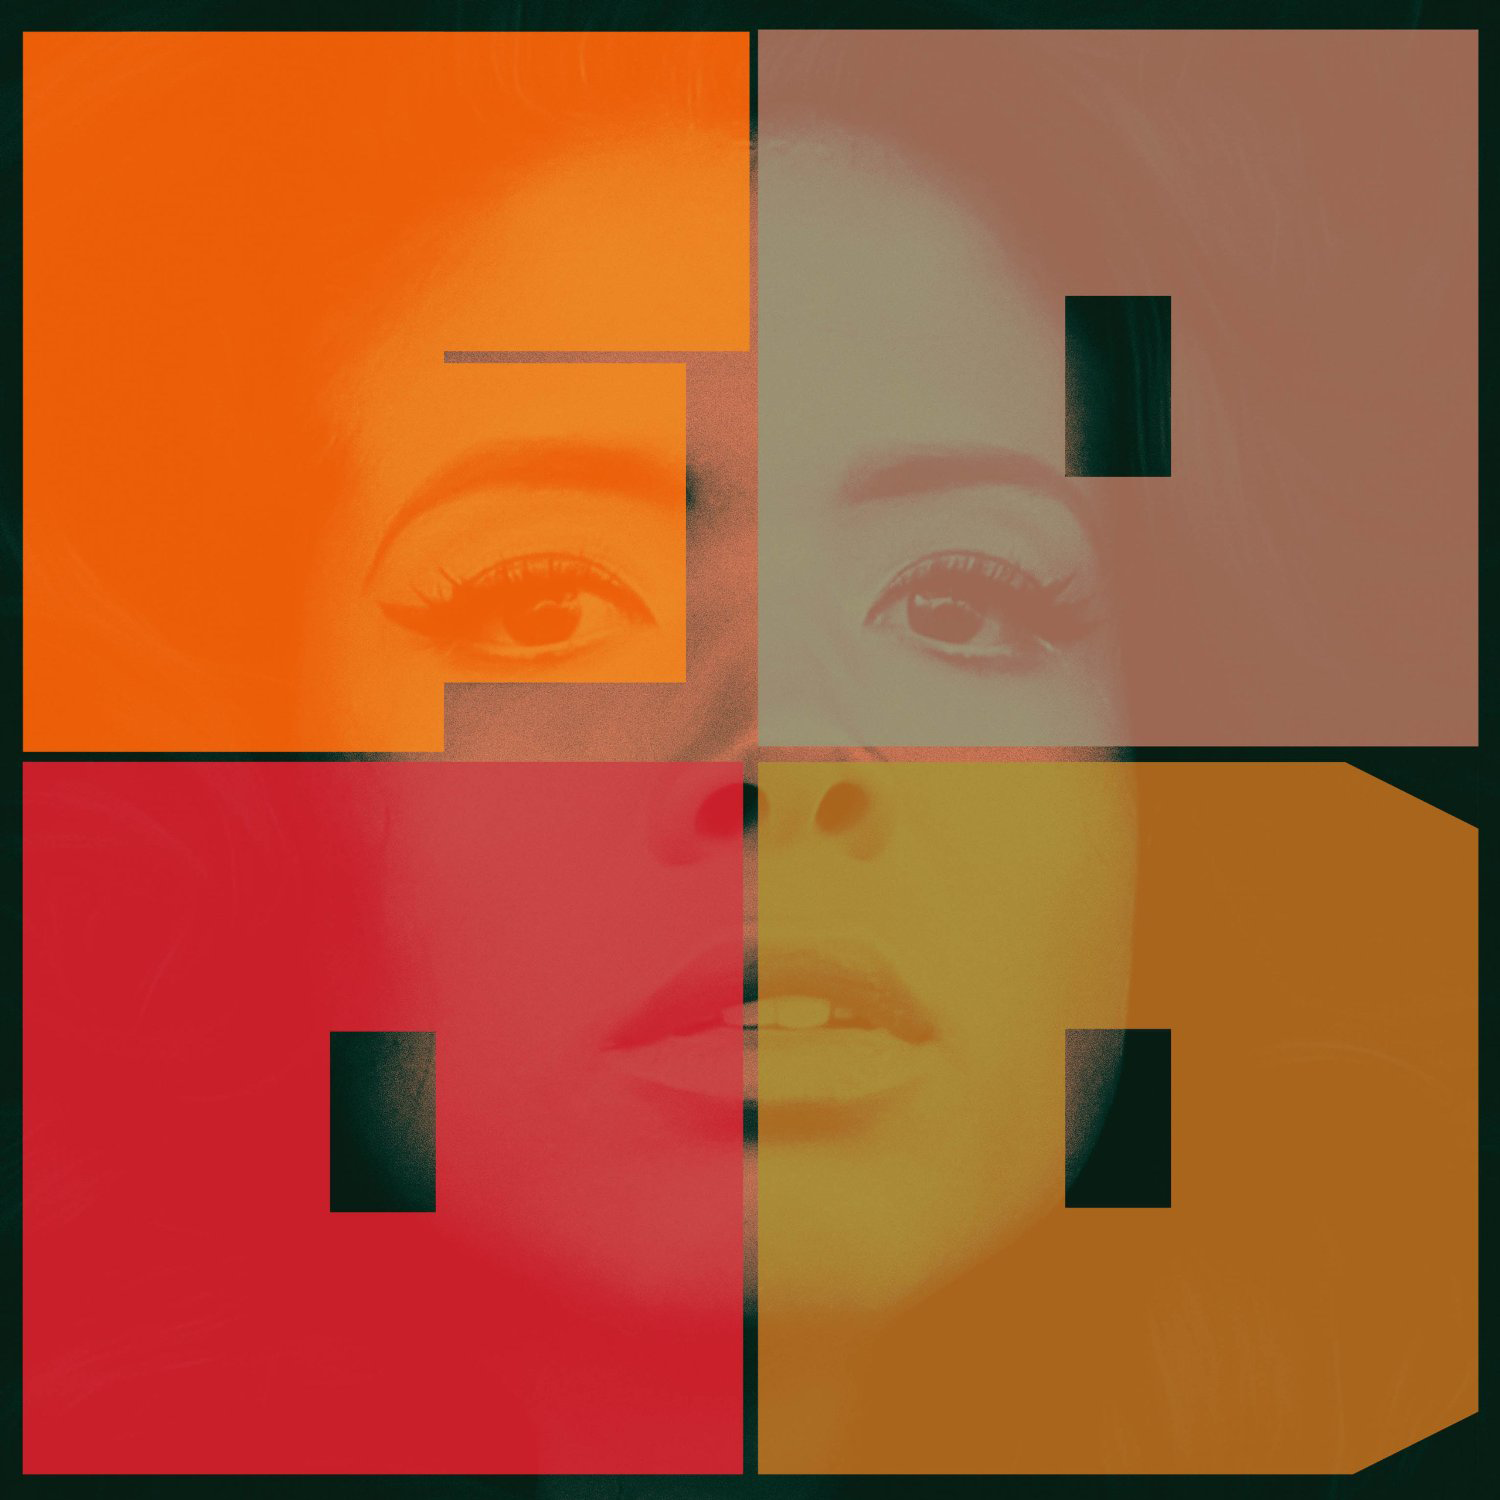 News Added May 01, 2013 R&B boundary-pusher Kelis' next album is finished and is due this September. The follow-up to 2010's Flesh Tone has provisionally been titled FOOD. The album was produced by TV on the Radio's Dave Sitek, who will release it on his label Federal Prism. The first track to be released from […]